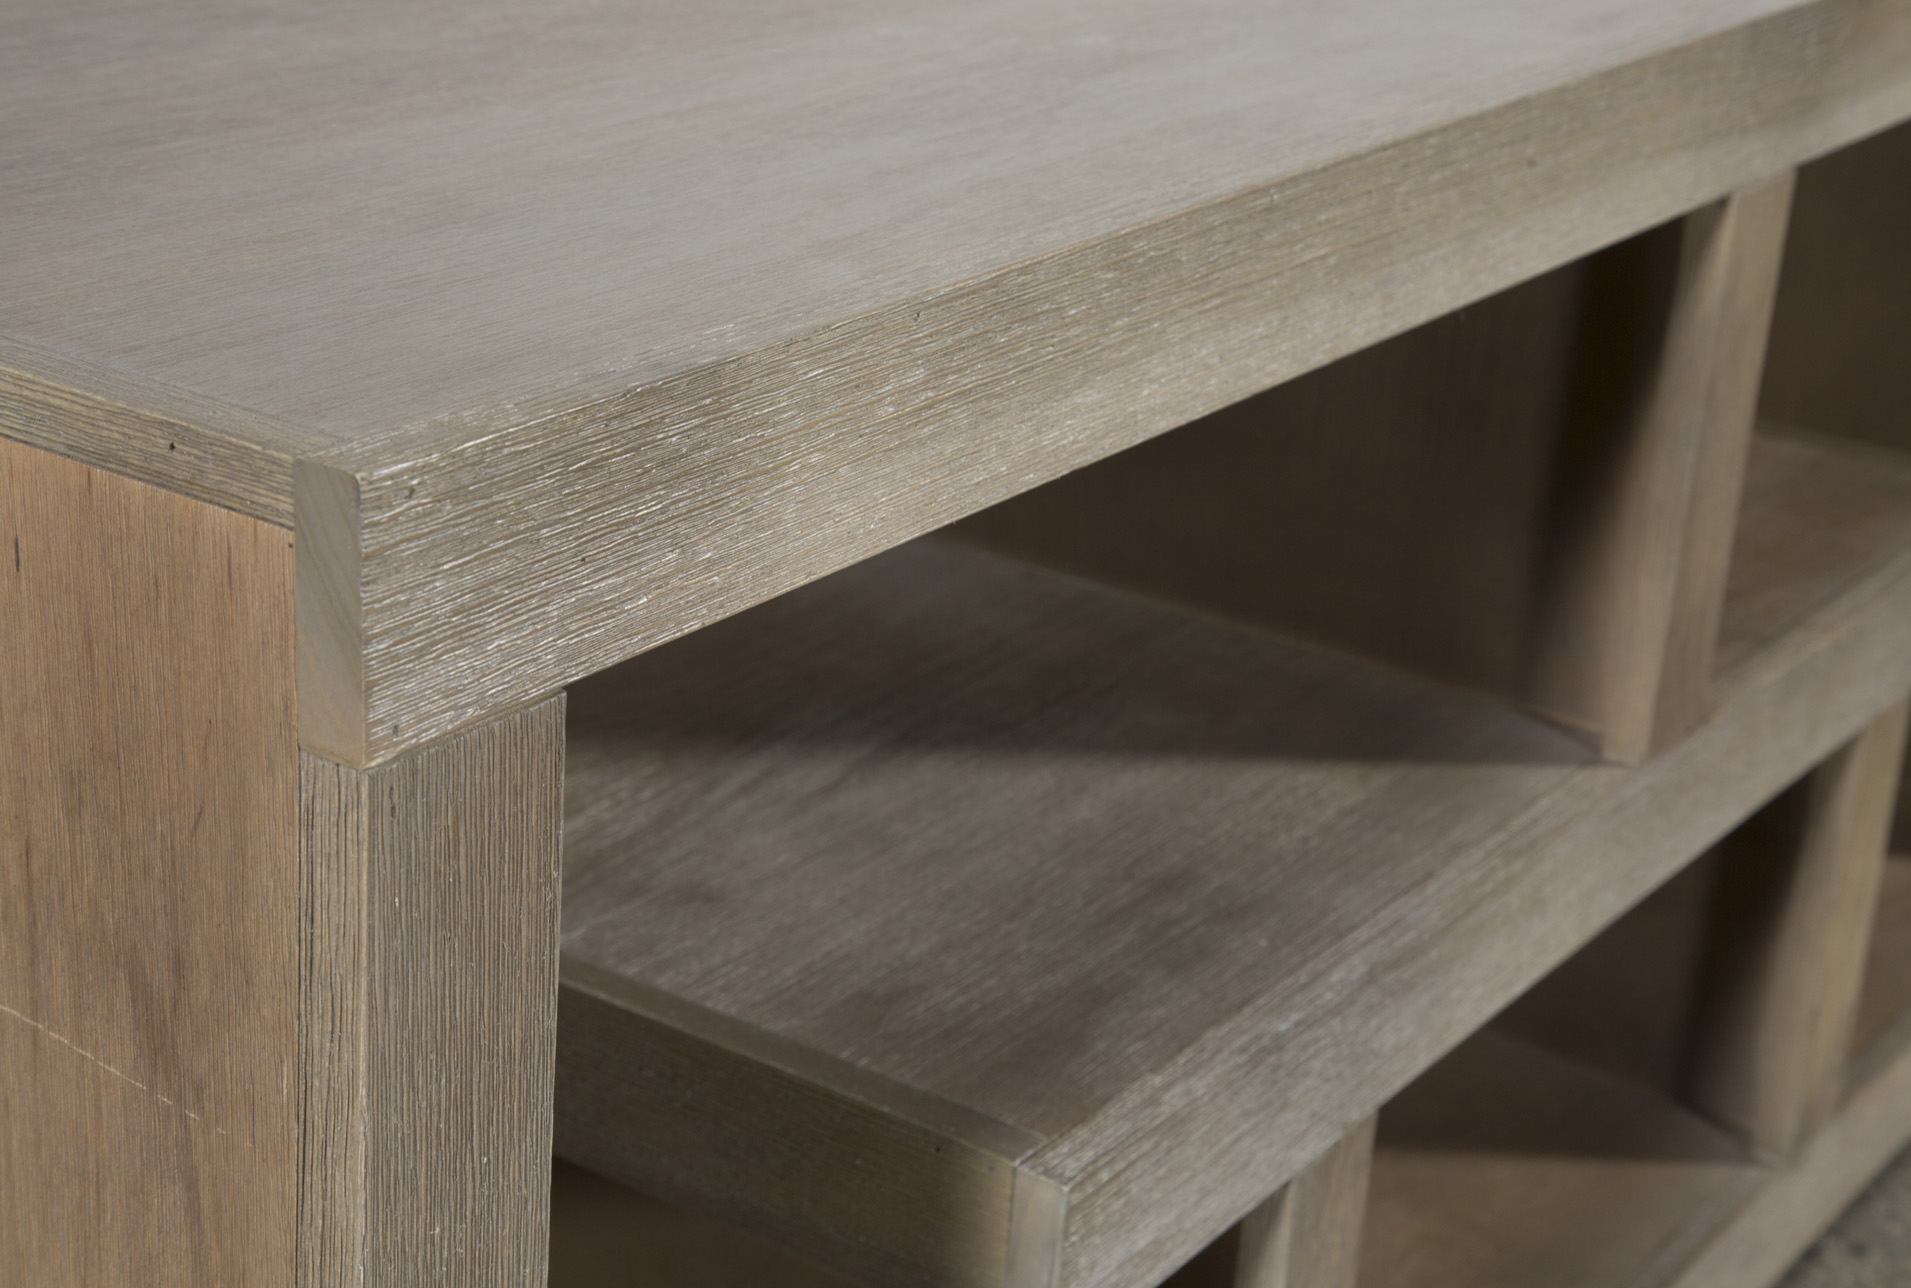 Walton Grey 60 Inch Tv Stand In 2018 | Products | Pinterest | Tvs Within Walton Grey 60 Inch Tv Stands (Photo 4 of 30)